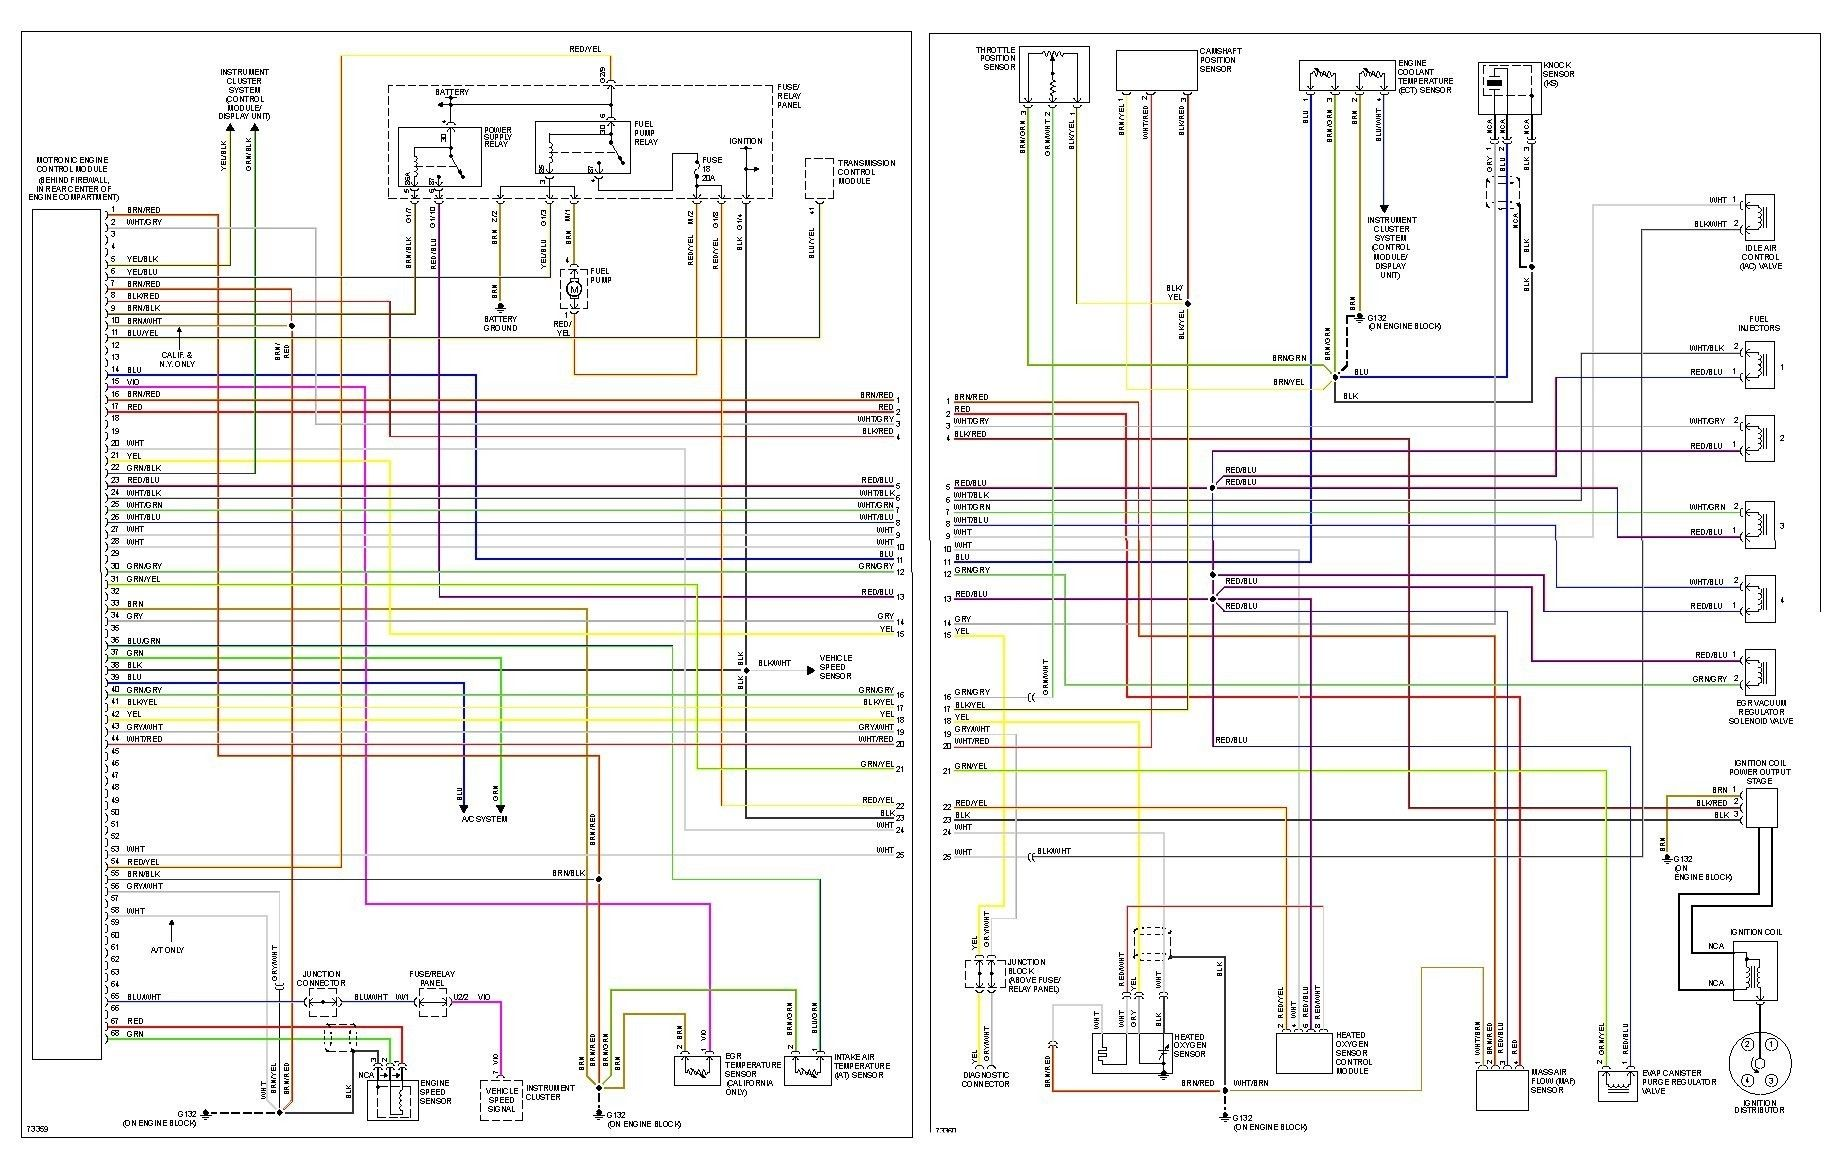 [SCHEMATICS_4US]  New Golf 4 1.9 Tdi Wiring Diagram #diagram #diagramsample #diagramtemplate # wiringdiagram #diagramchart #worksheet #worksheettemplate | Vw up, Vr6  engine, Tdi | 2001 Audi Tt Cooling Fan Wiring Diagram |  | Pinterest